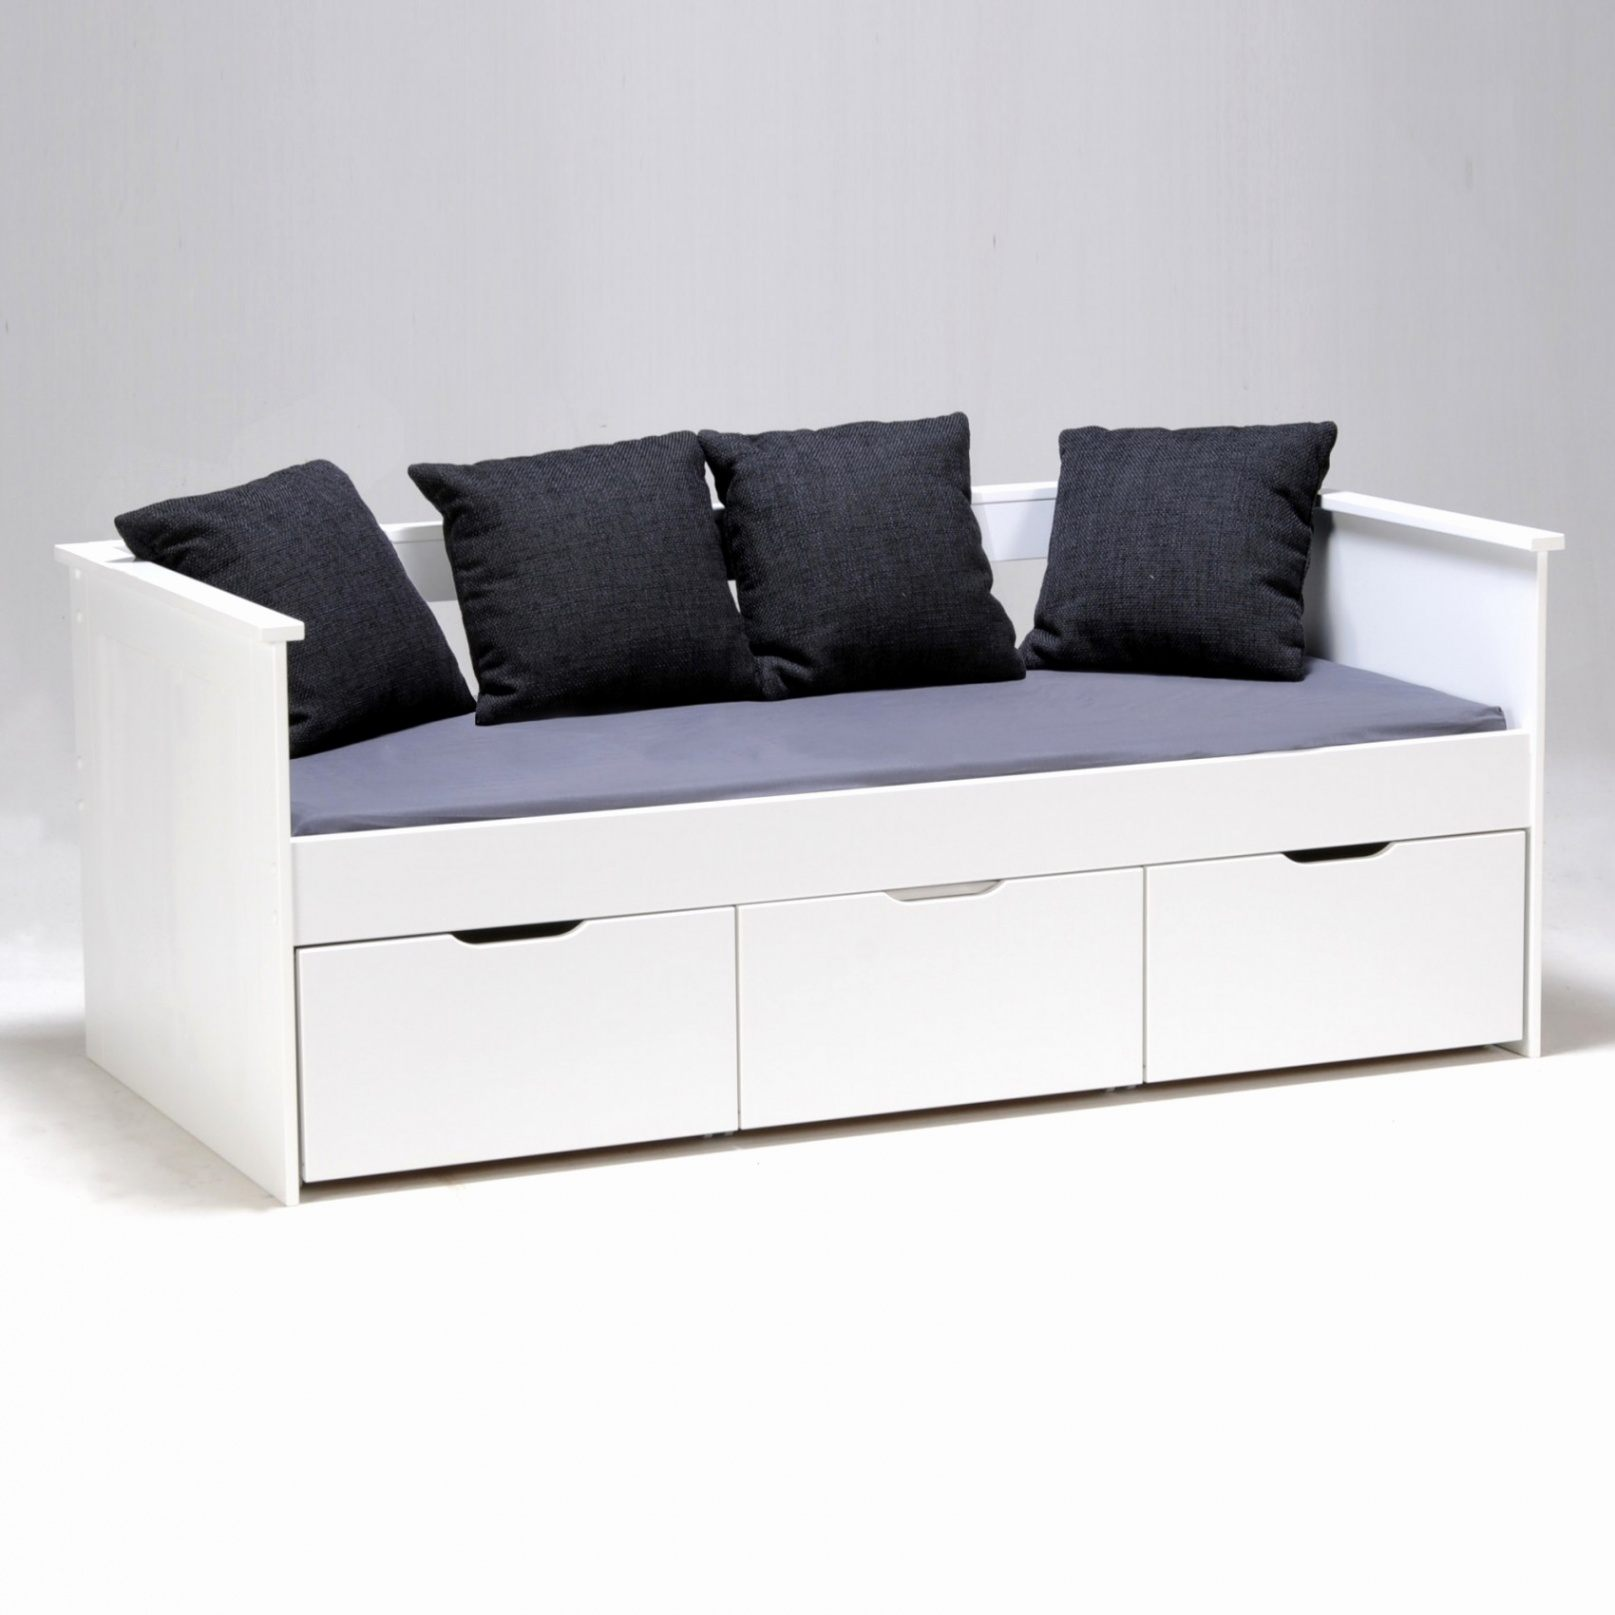 Lit Coffre Amazon Meilleur De but Bz élégant Bz 2 Places Stunning Awesome Affordable Banquette Lit